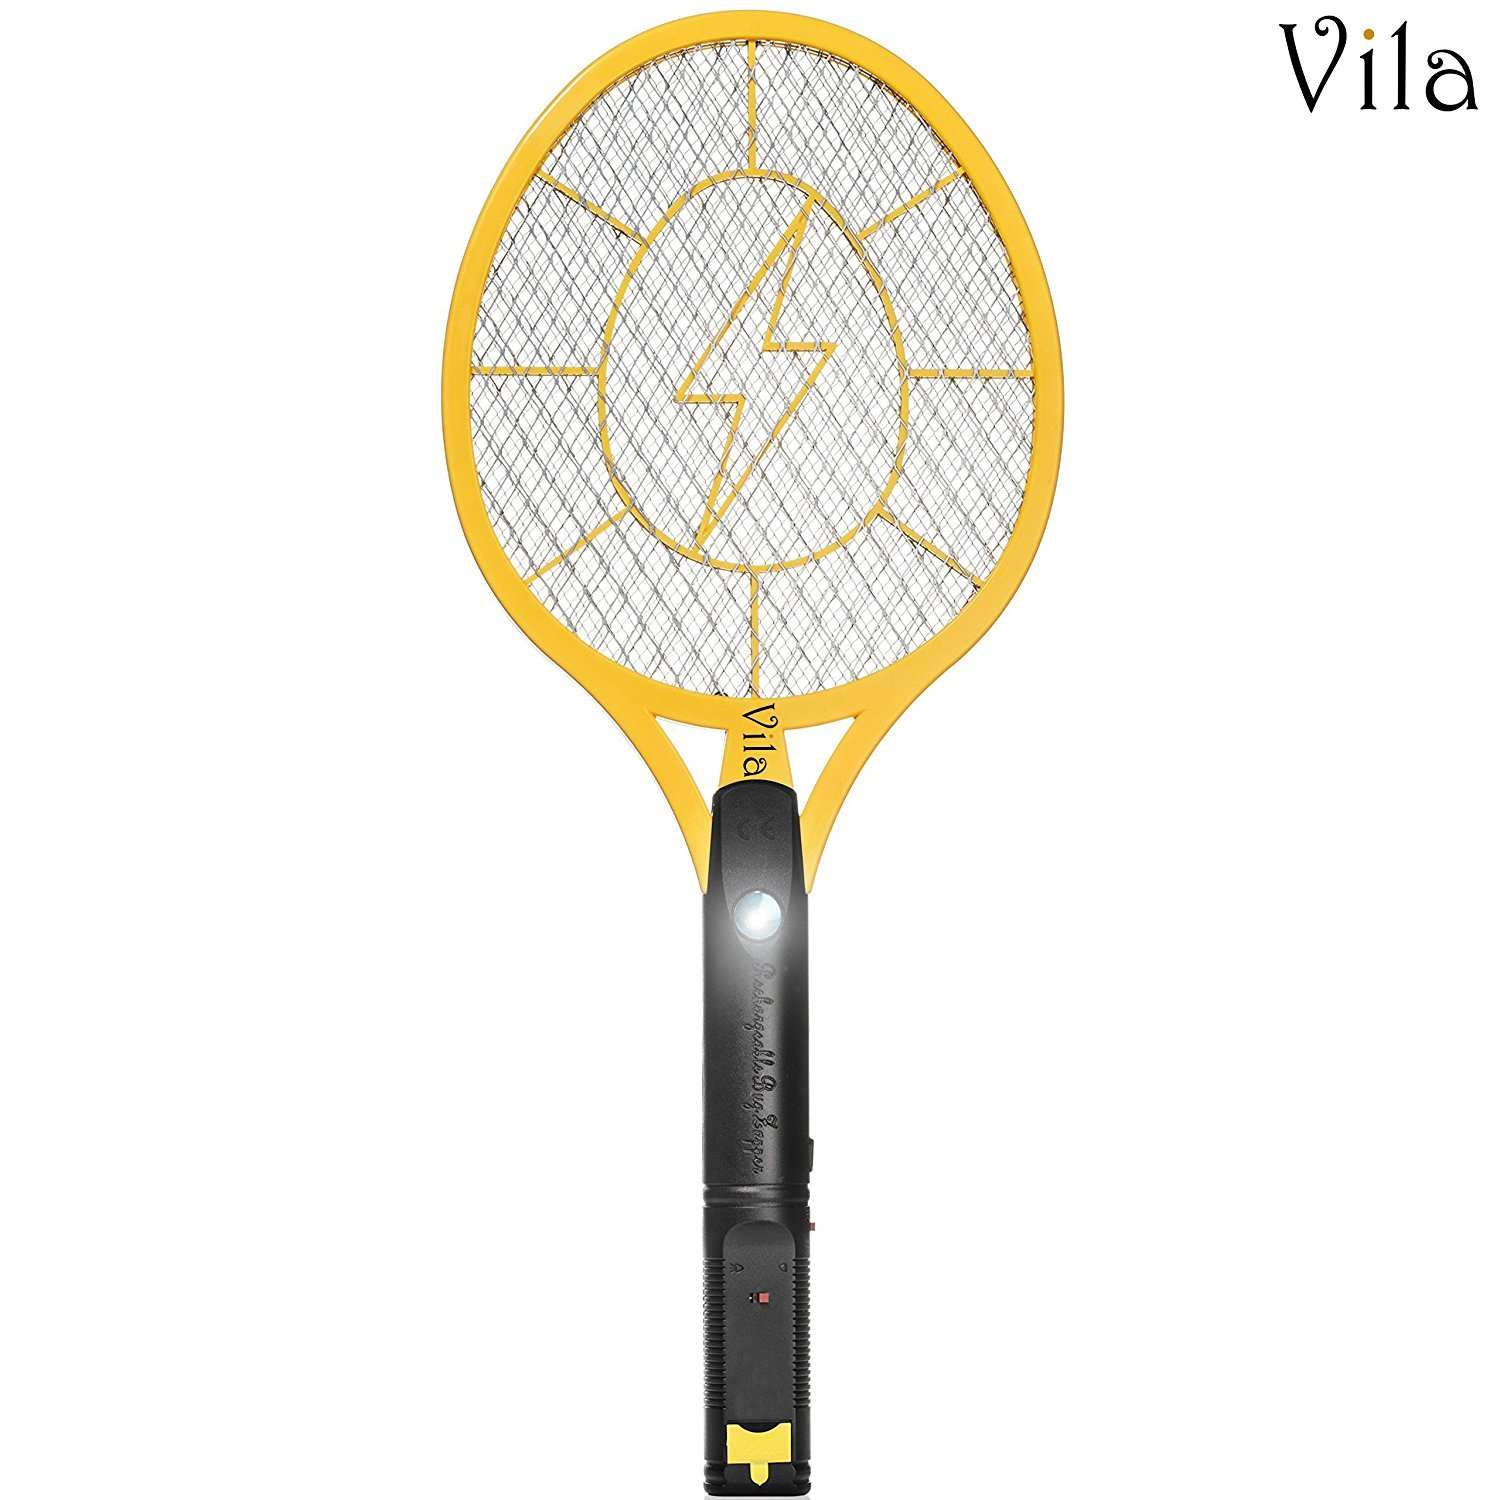 Electric Bug Zapper - Instant Fly & Mosquito Swatter - USB Rechargeable Racket - Super-Bright Inbuilt LED Light to Kill Insects in Dark - 3-Layer Safety wasp, Safe to Touch